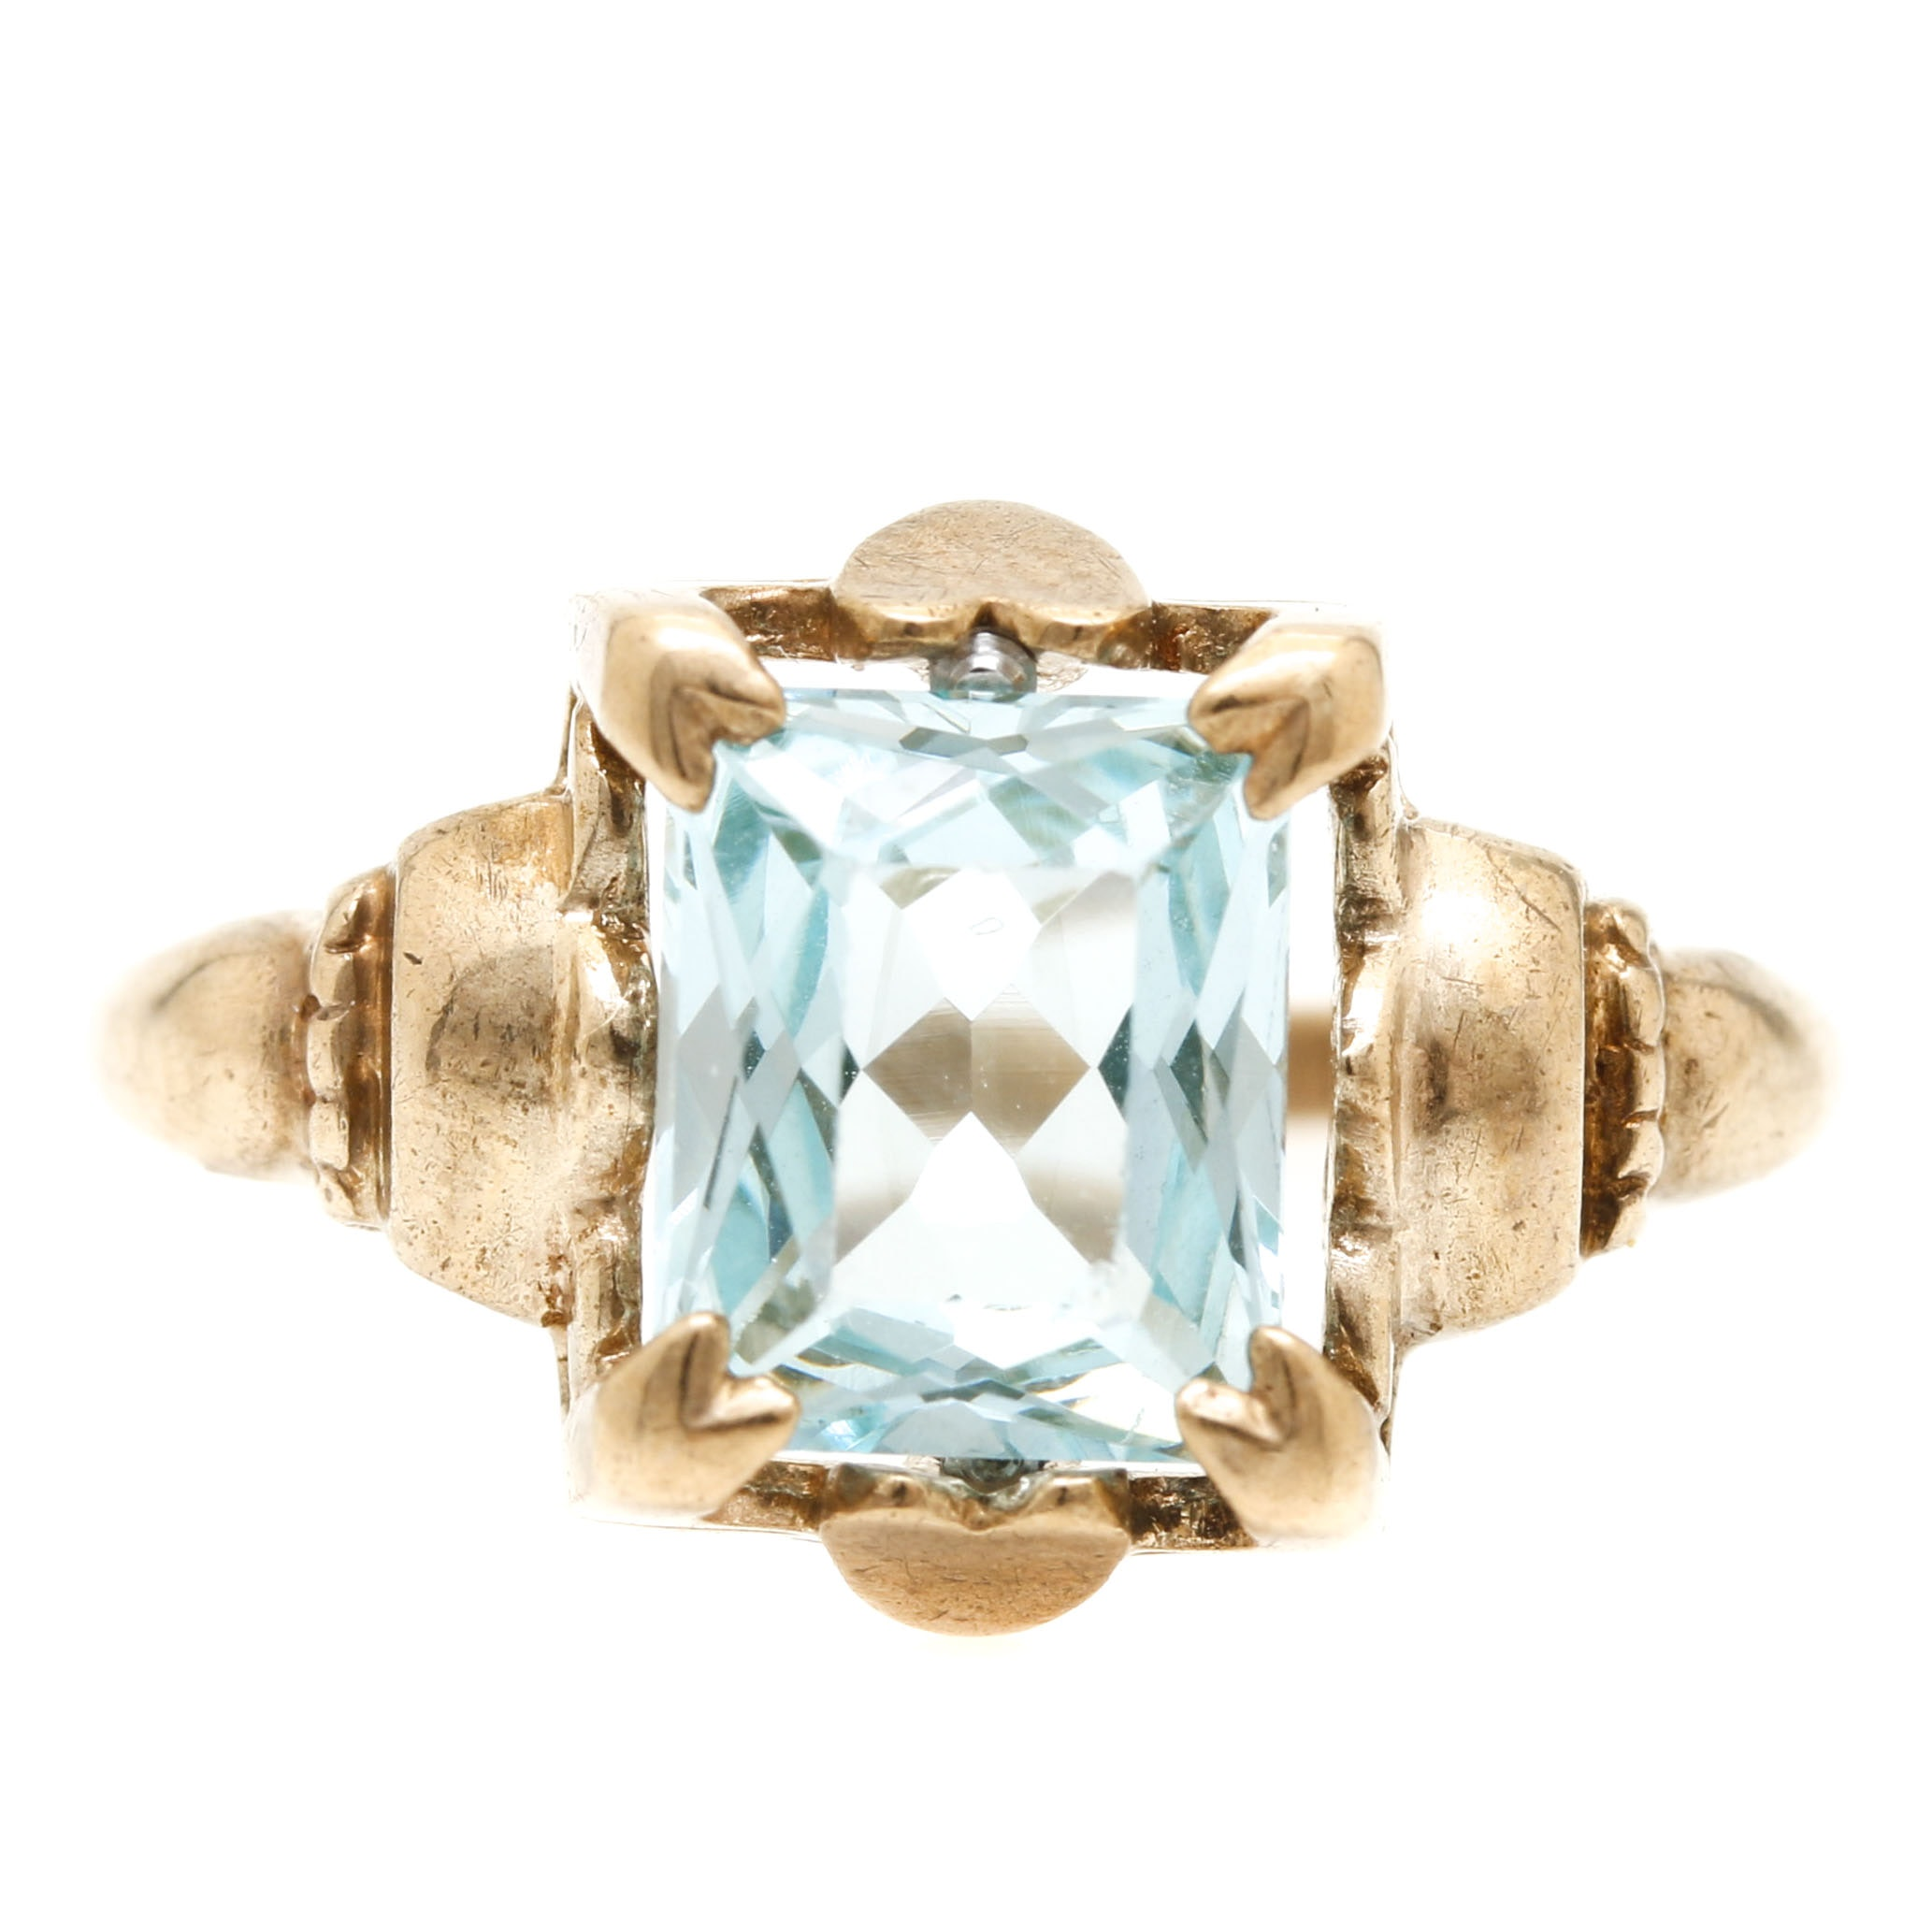 10K Yellow Gold Spinel Ring